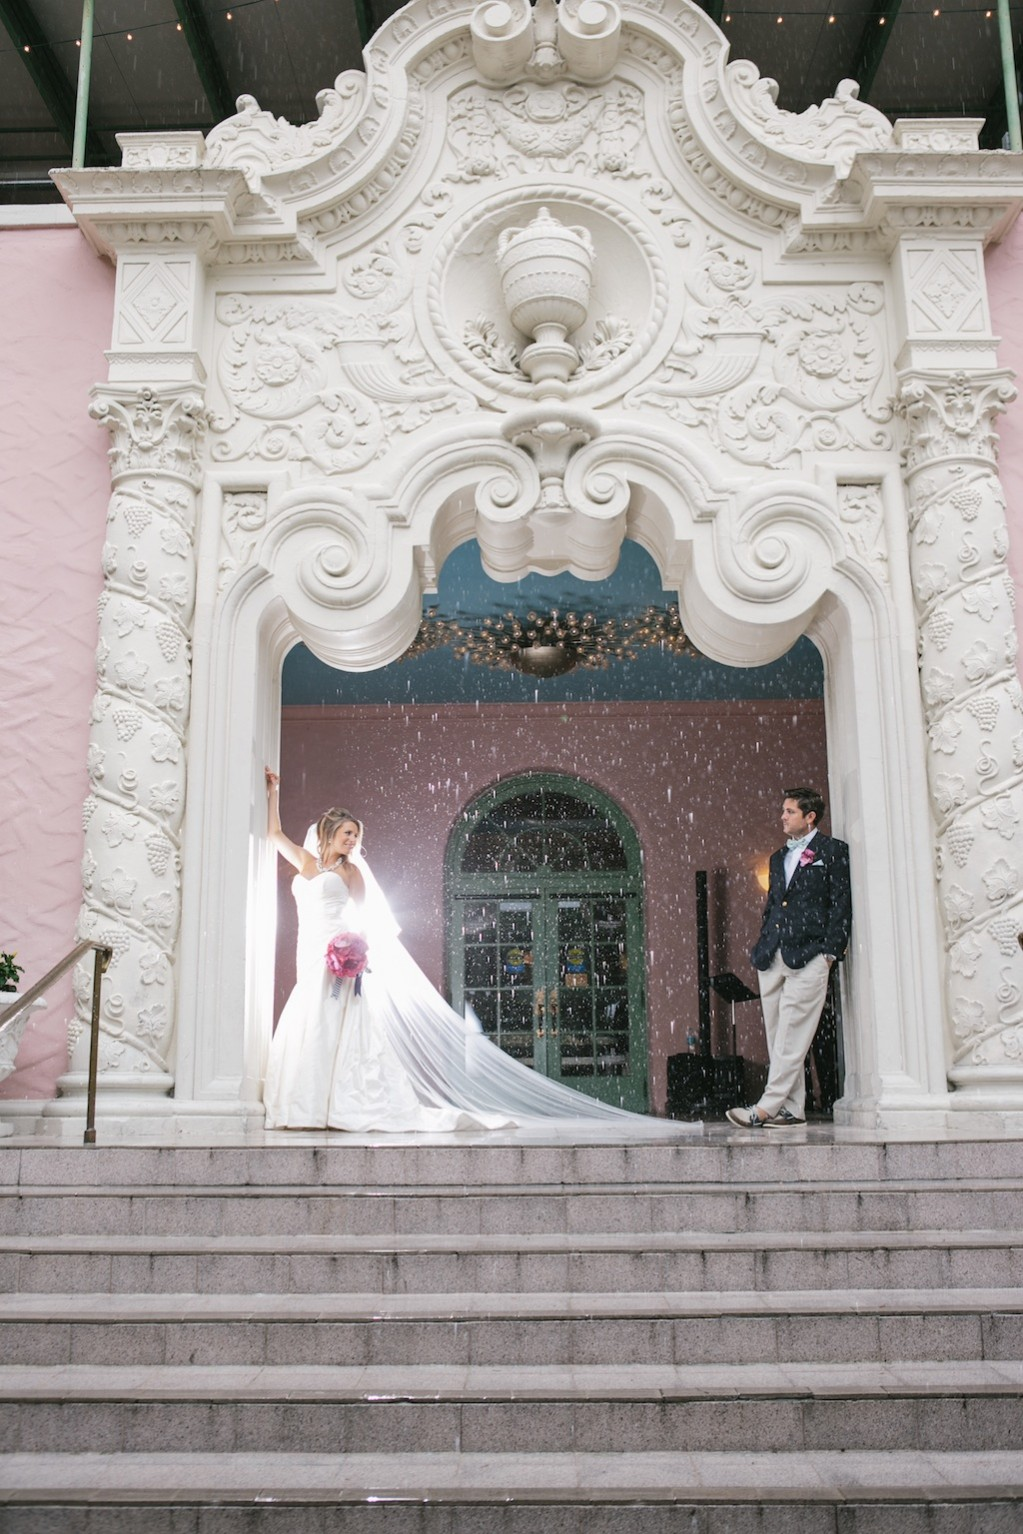 Renaissance Vinoy Bride and Groom on Wedding Day - Tampa Wedding Photographer Carrie Wildes Photography